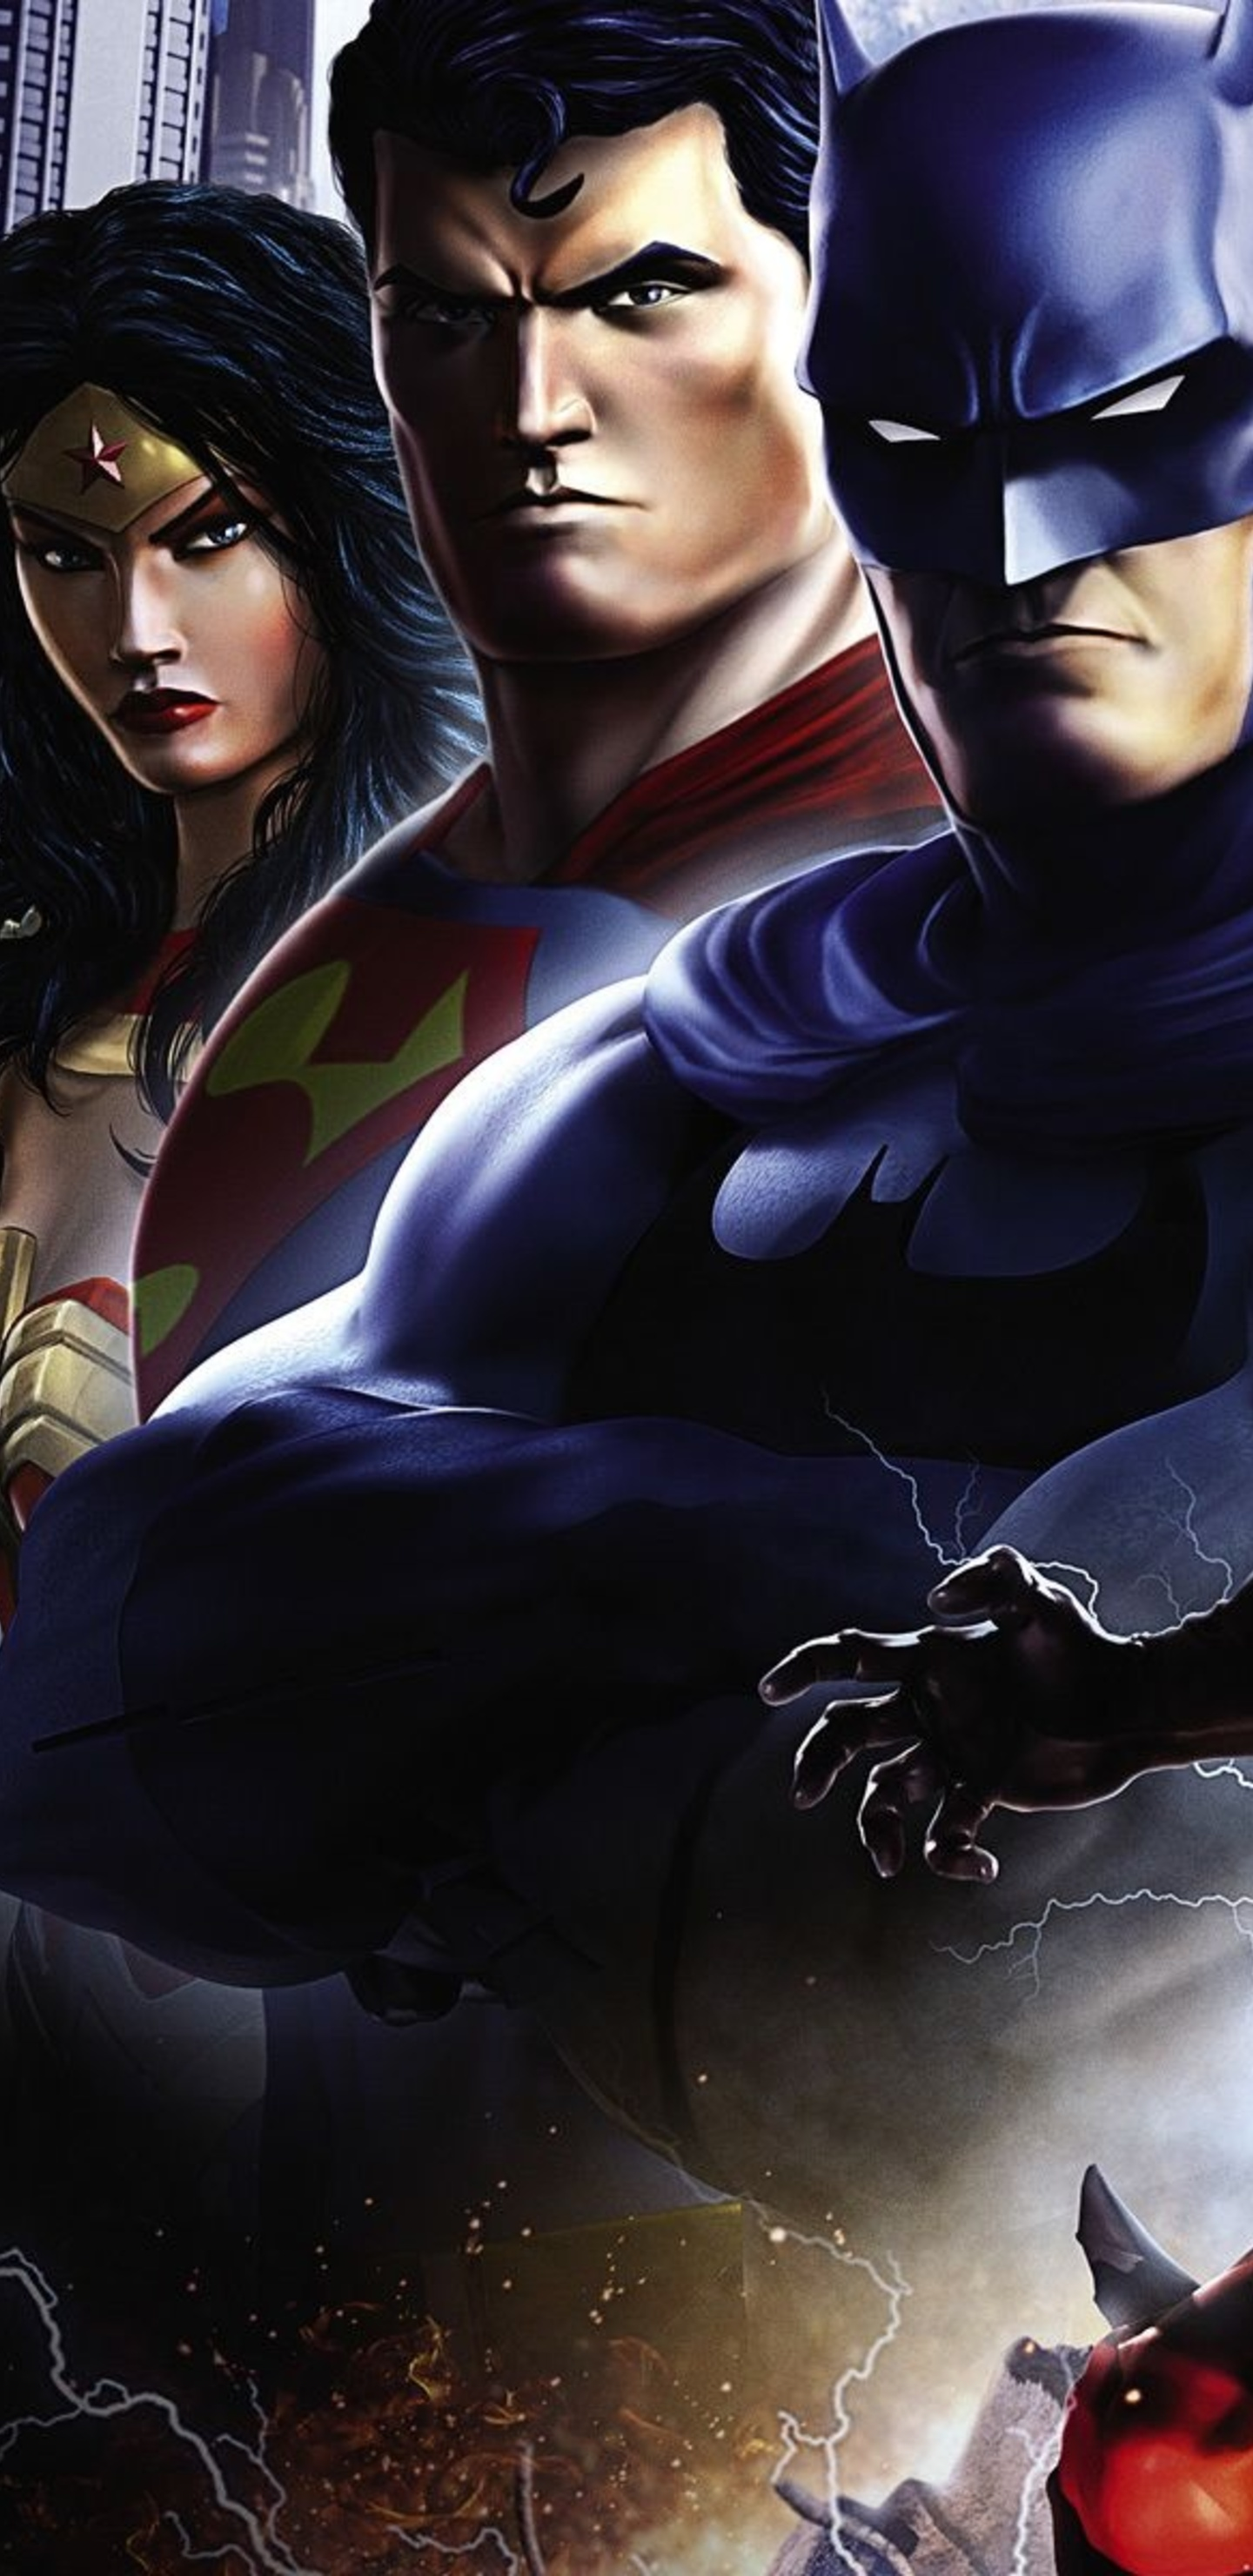 dc-superheroes-and-villians-j9.jpg